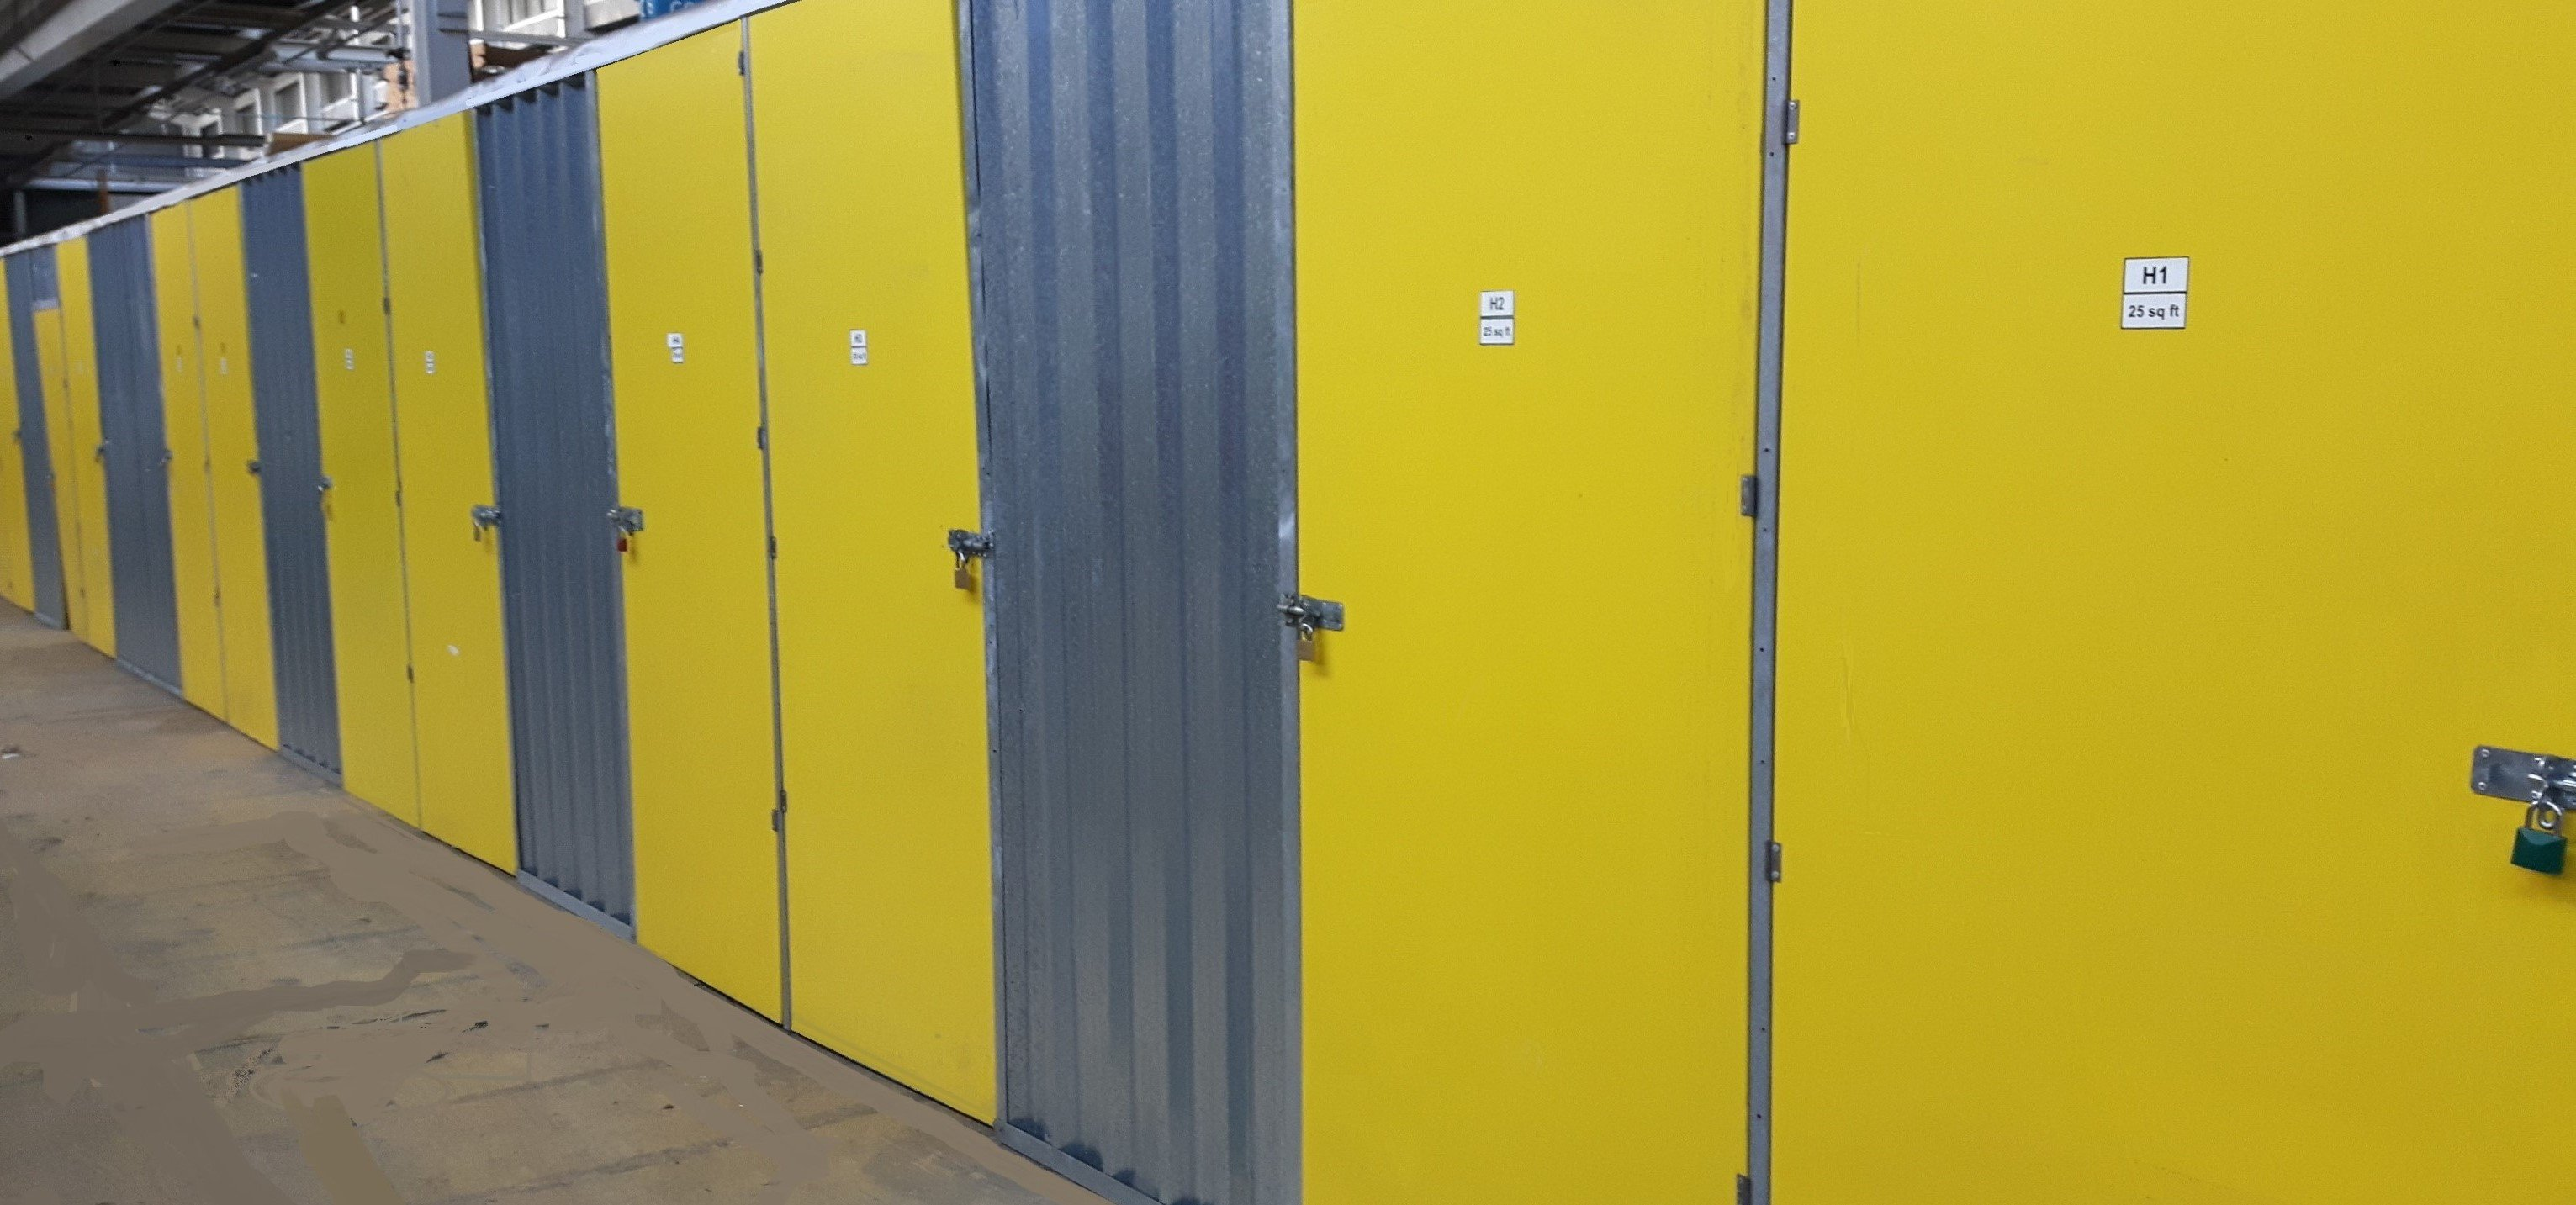 Domestic storage solutions